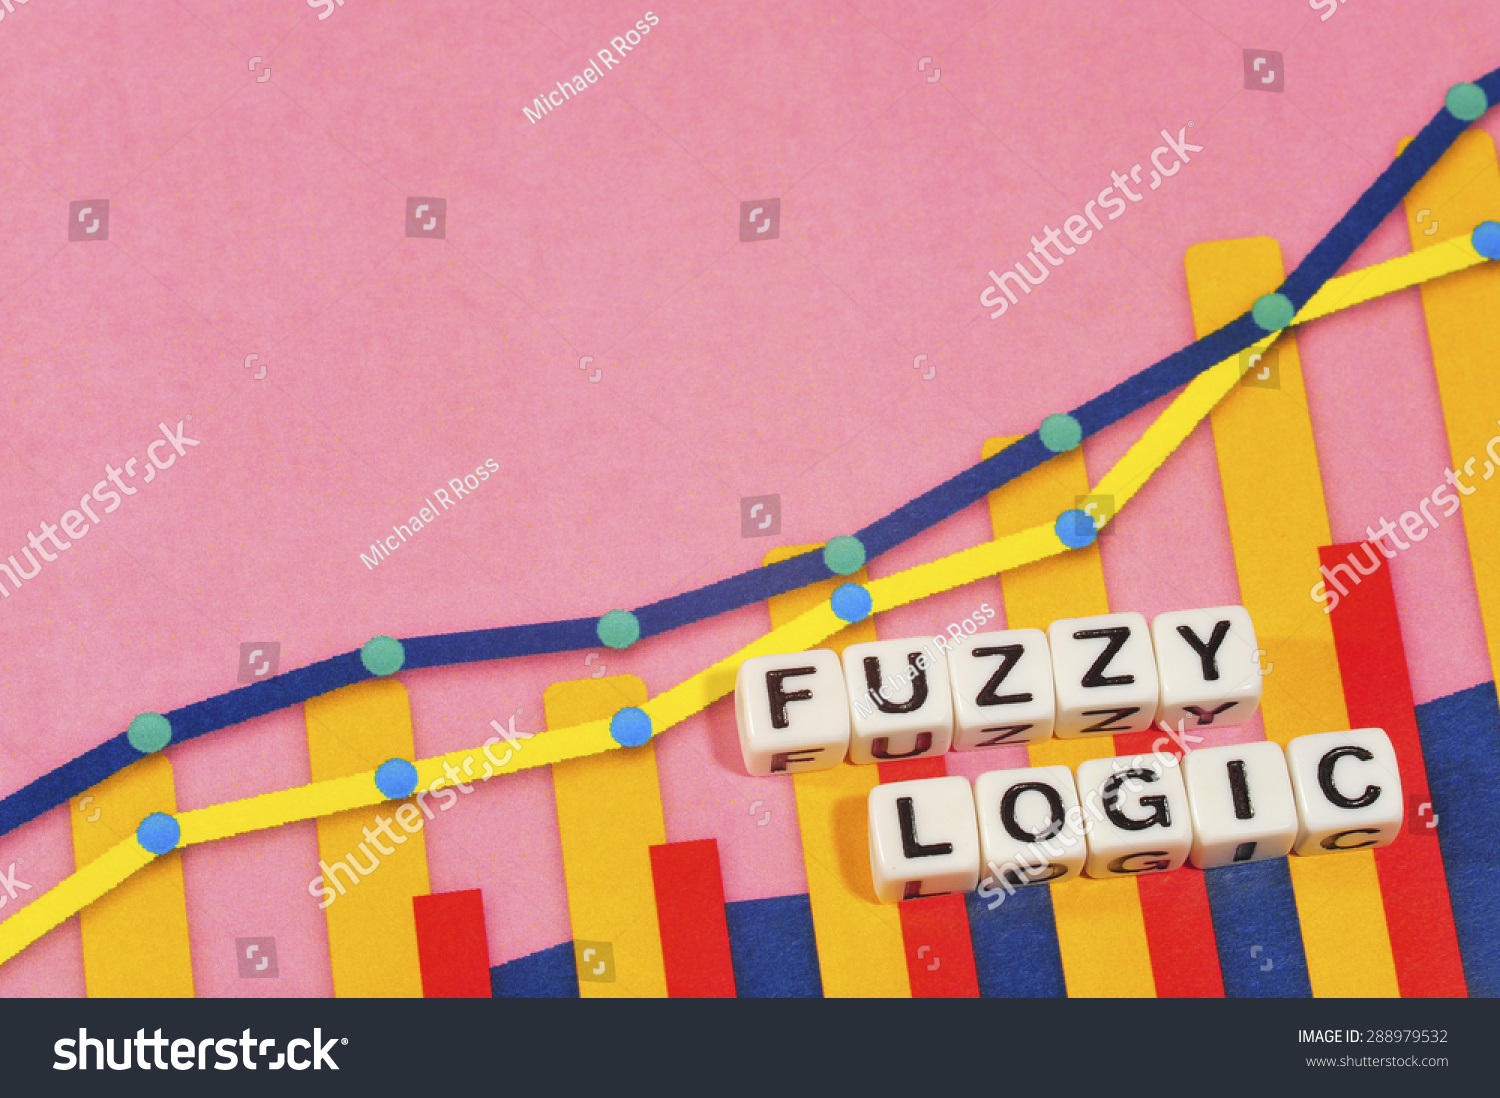 term paper on fuzzy logic Tutorial on fuzzy logic jan jantzen jj@iaudtudk:1  and this paper is part of a course for control engineers  today the term fulvs set is used,.